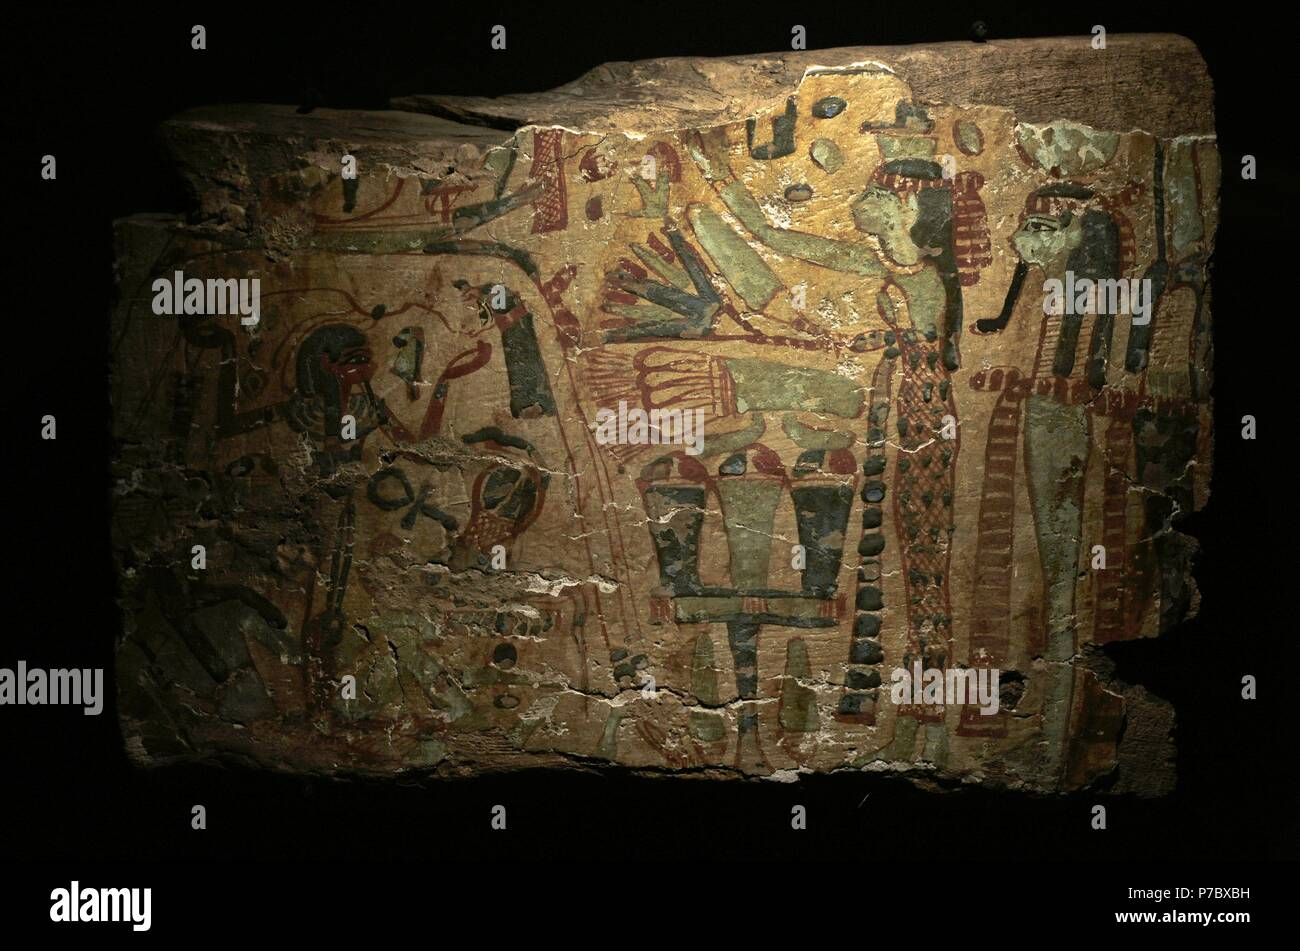 The creation by the Egyptians. Fragment of coffin painted in different colors. Type Deir el-Bahari. The sky Goddess Nut leans over the earth Geb. Between them, their father Shu keeps separated. The Sun God travels by boat above the back of Nut. 21st-22th Dynasties (1081-725 BC). Third Intermediate Period. Wood. Museum of Mediterranean and Near Eastern Antiquities. Stockholm. Sweden. - Stock Image